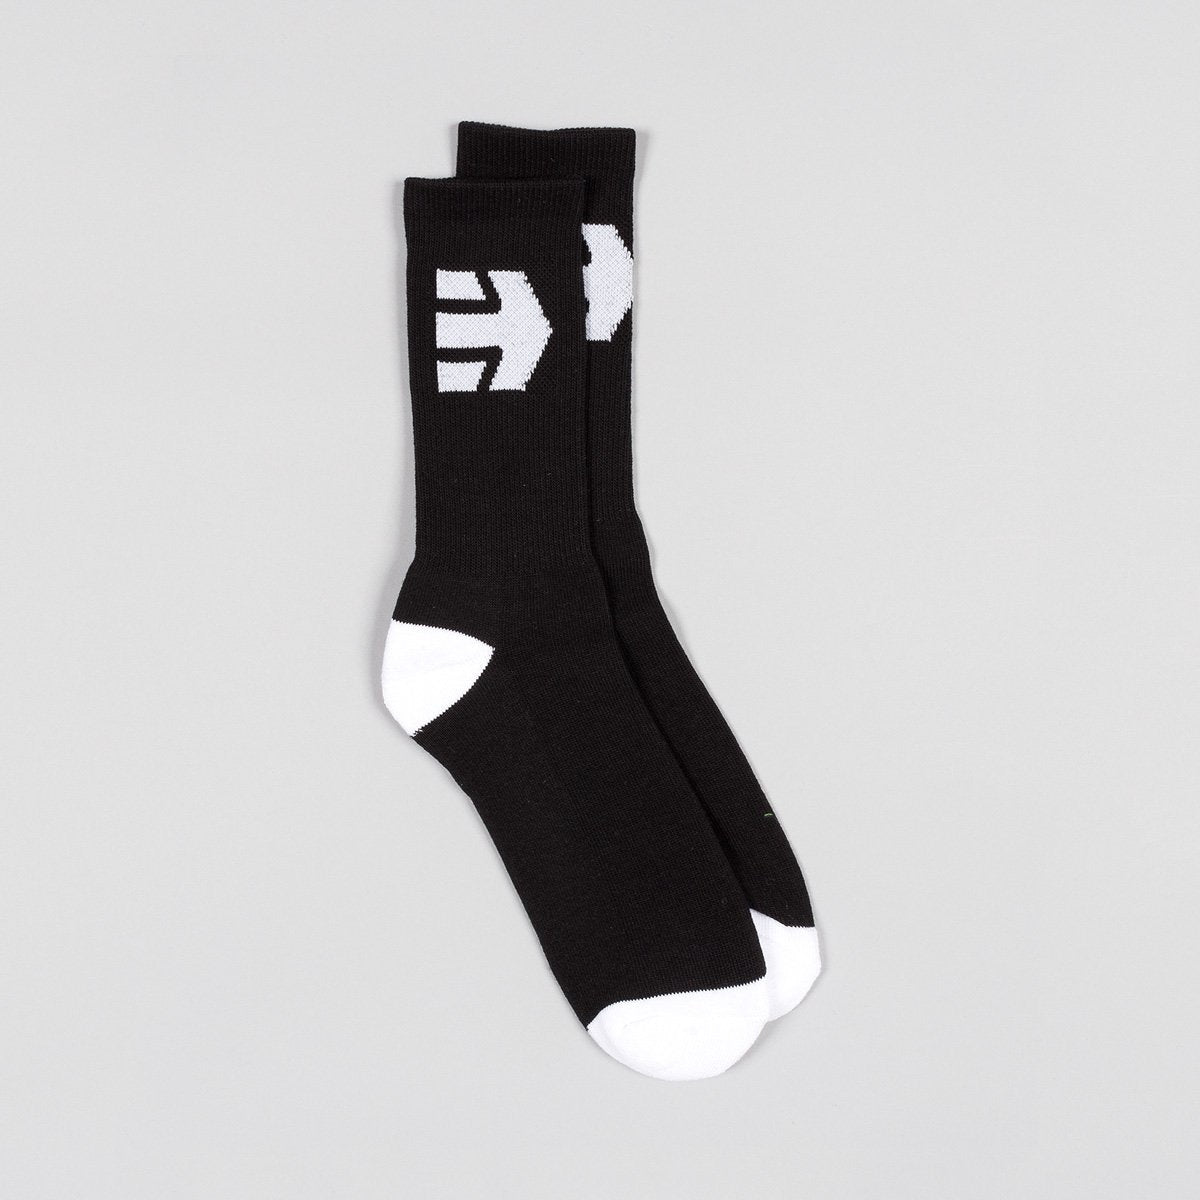 Etnies Direct Socks 3 Pack Black - Accessories